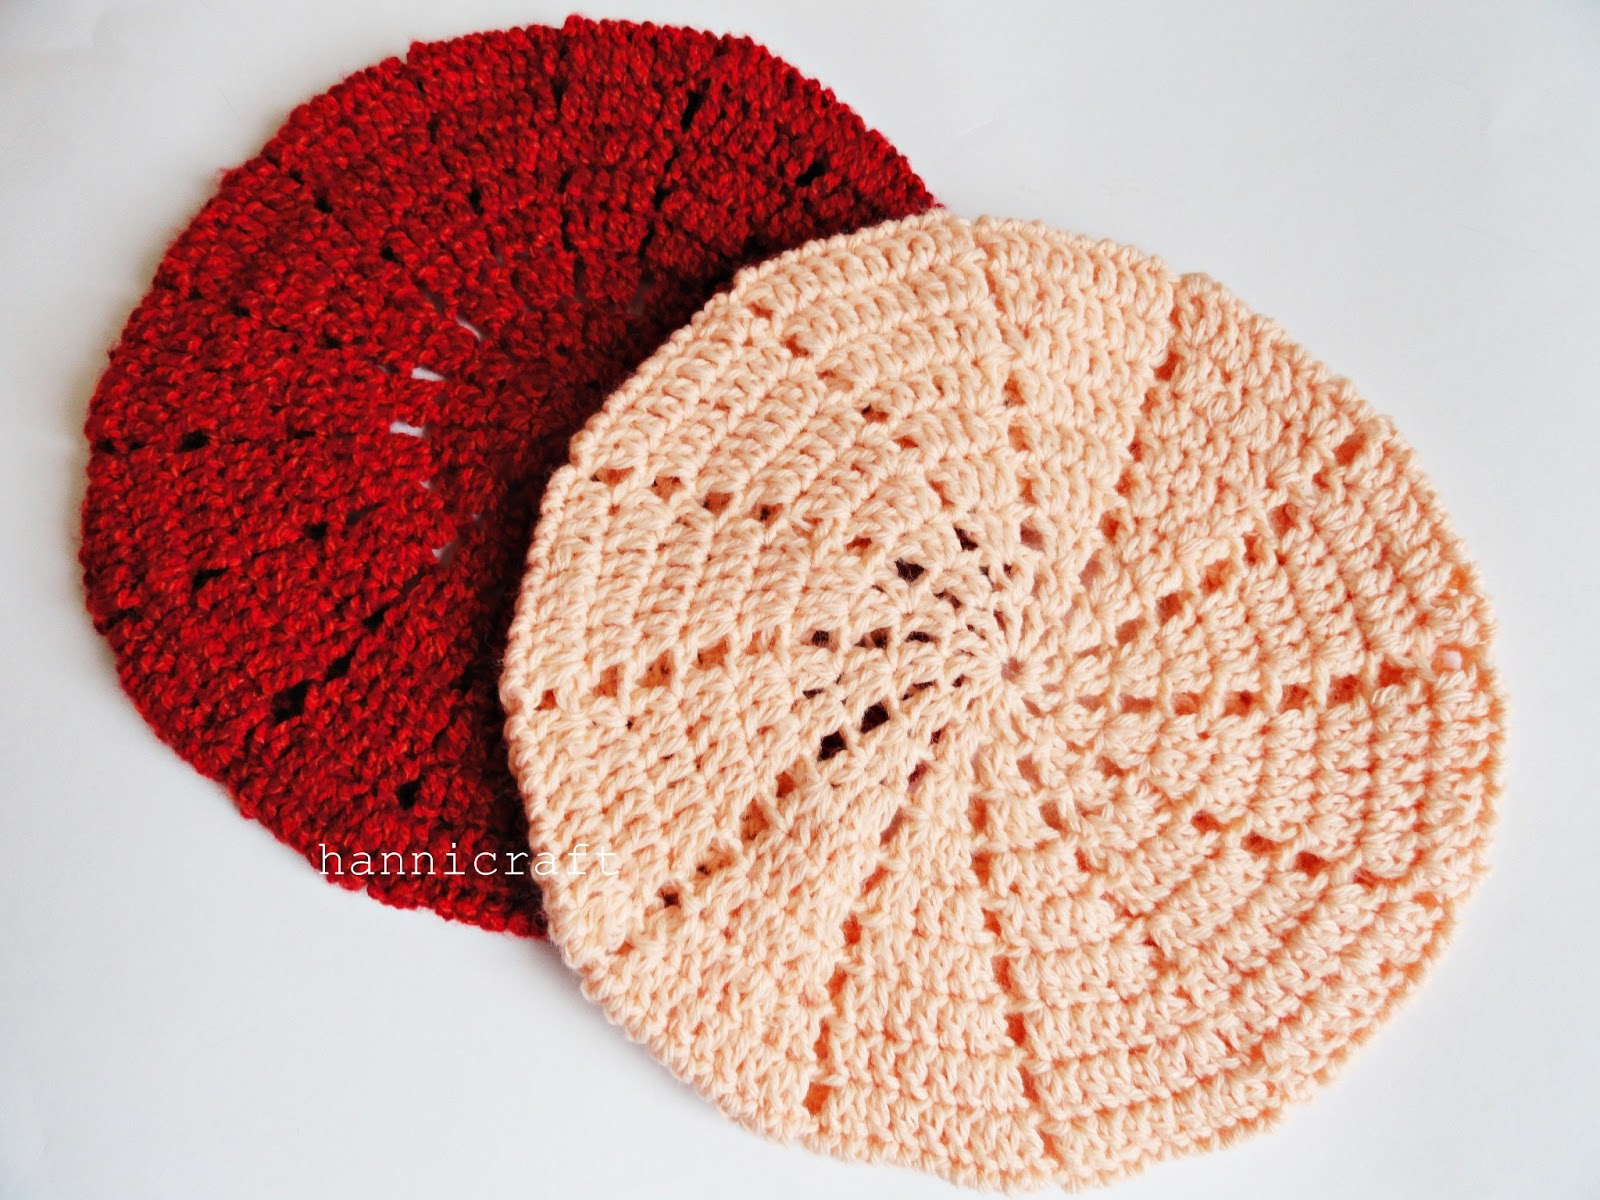 Free Crochet Beanie Beret Pattern : hannicraft: Simple beret crochet pattern